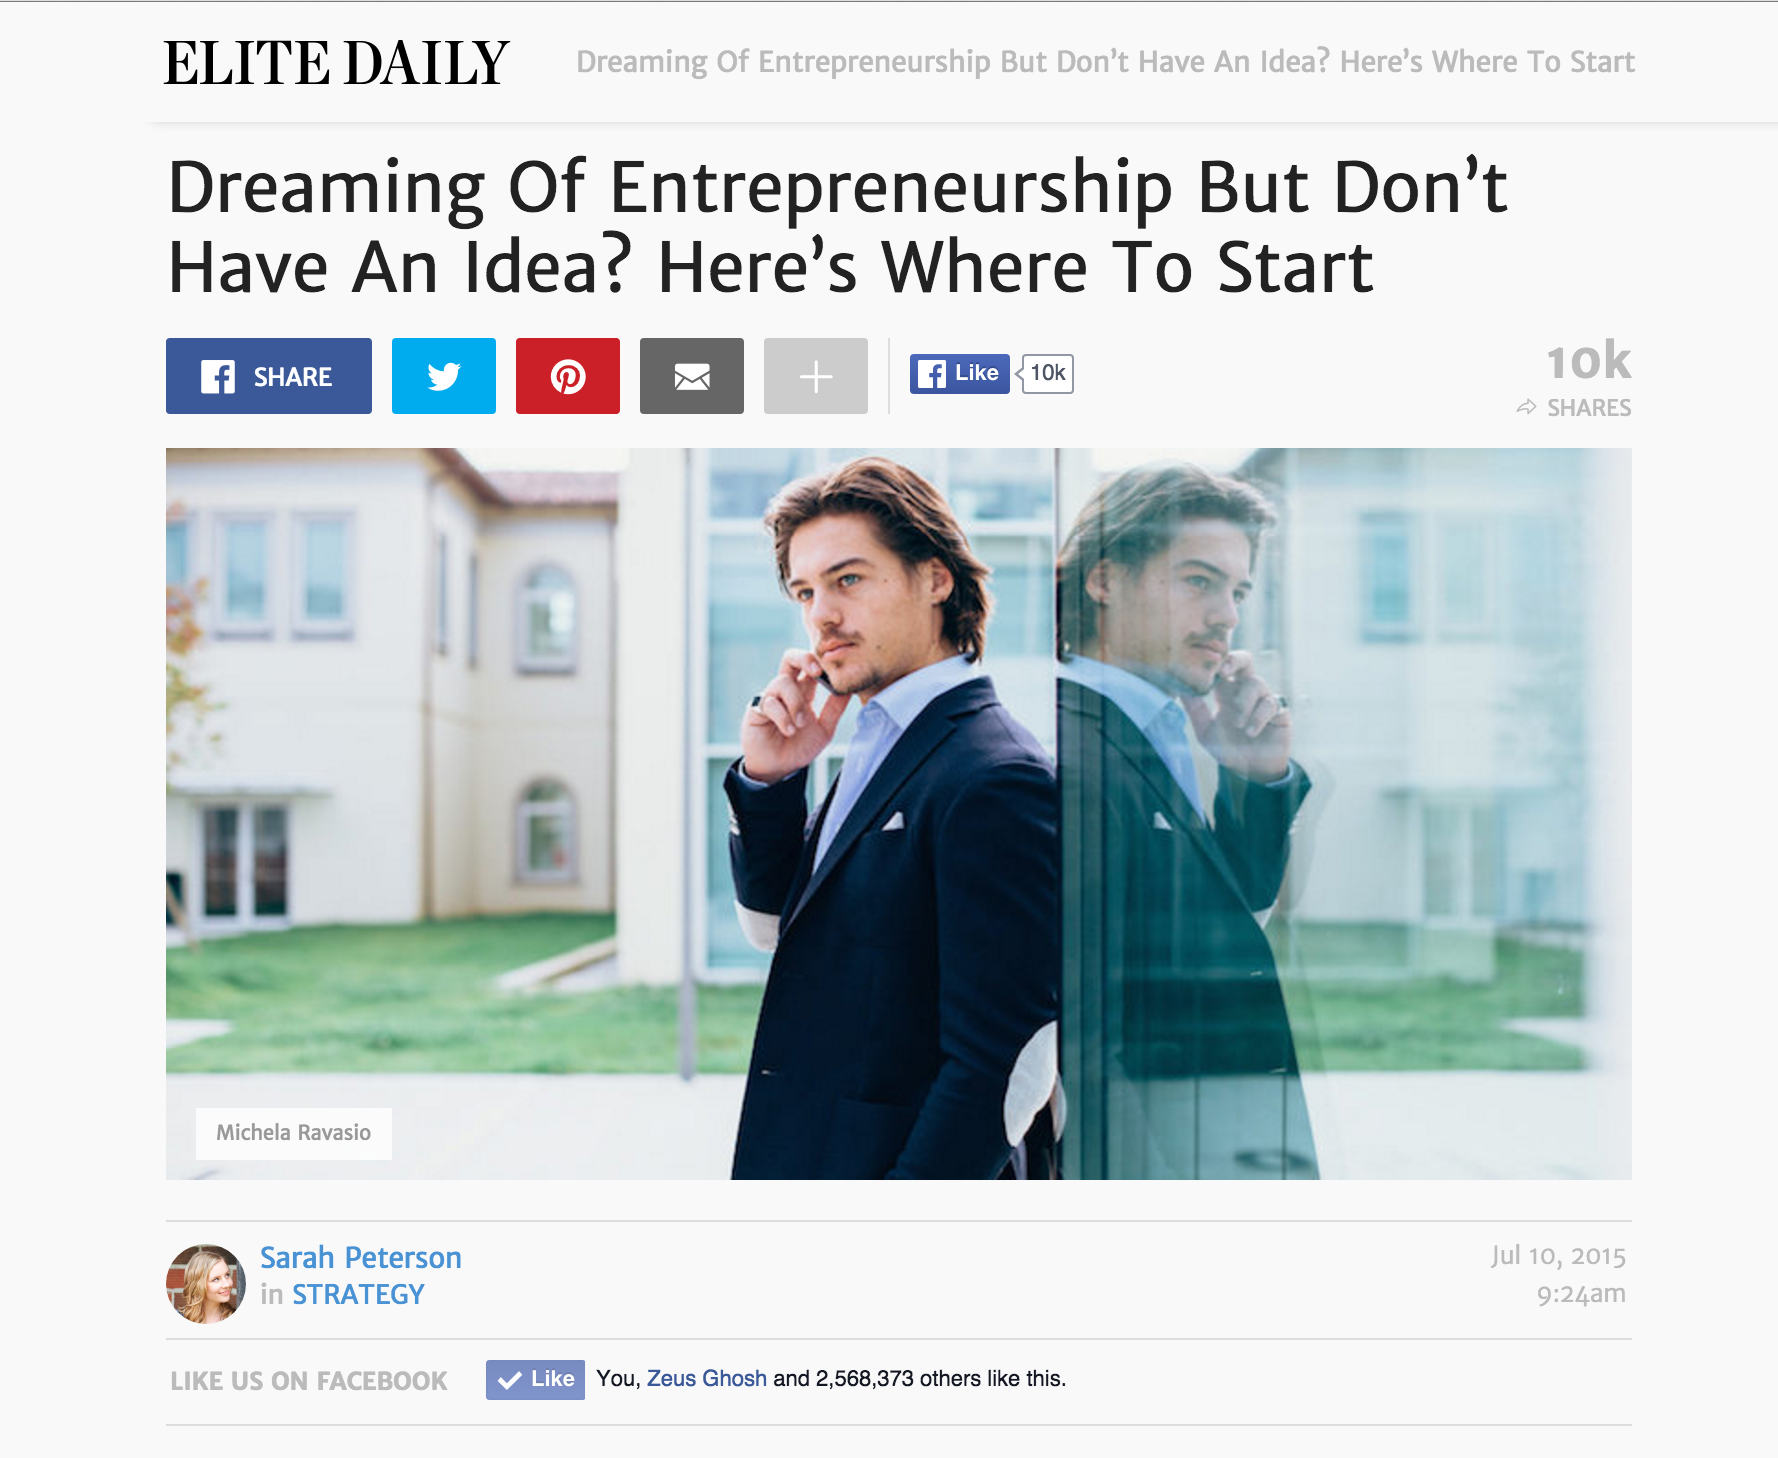 Screenshot of a content piece on Elite Daily